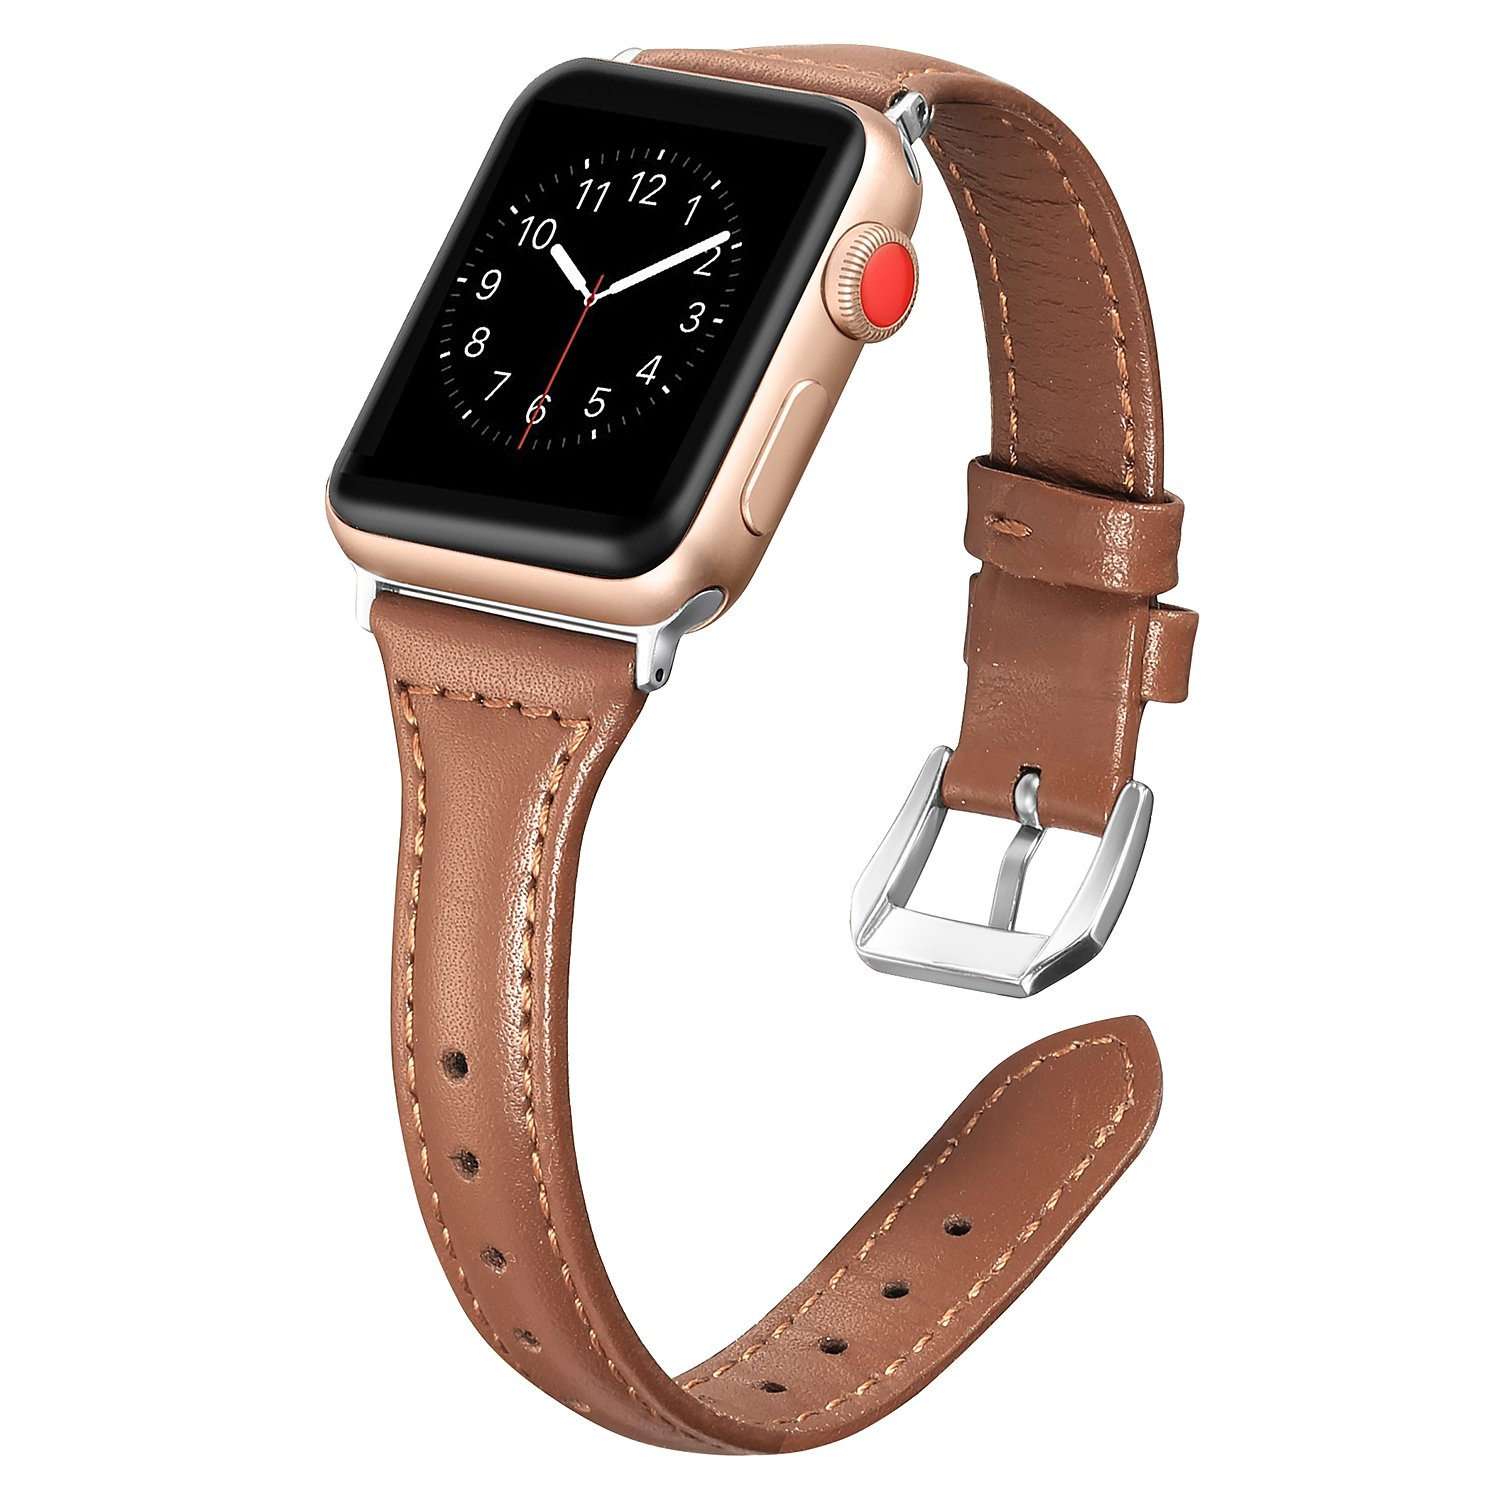 Secbolt Leather Bands Compatible Apple Watch Band 38mm 40mm Slim Replacement Wristband Sport Strap for Iwatch, Series 4 3 2 1, Edition Stainless Steel Buckle by Secbolt